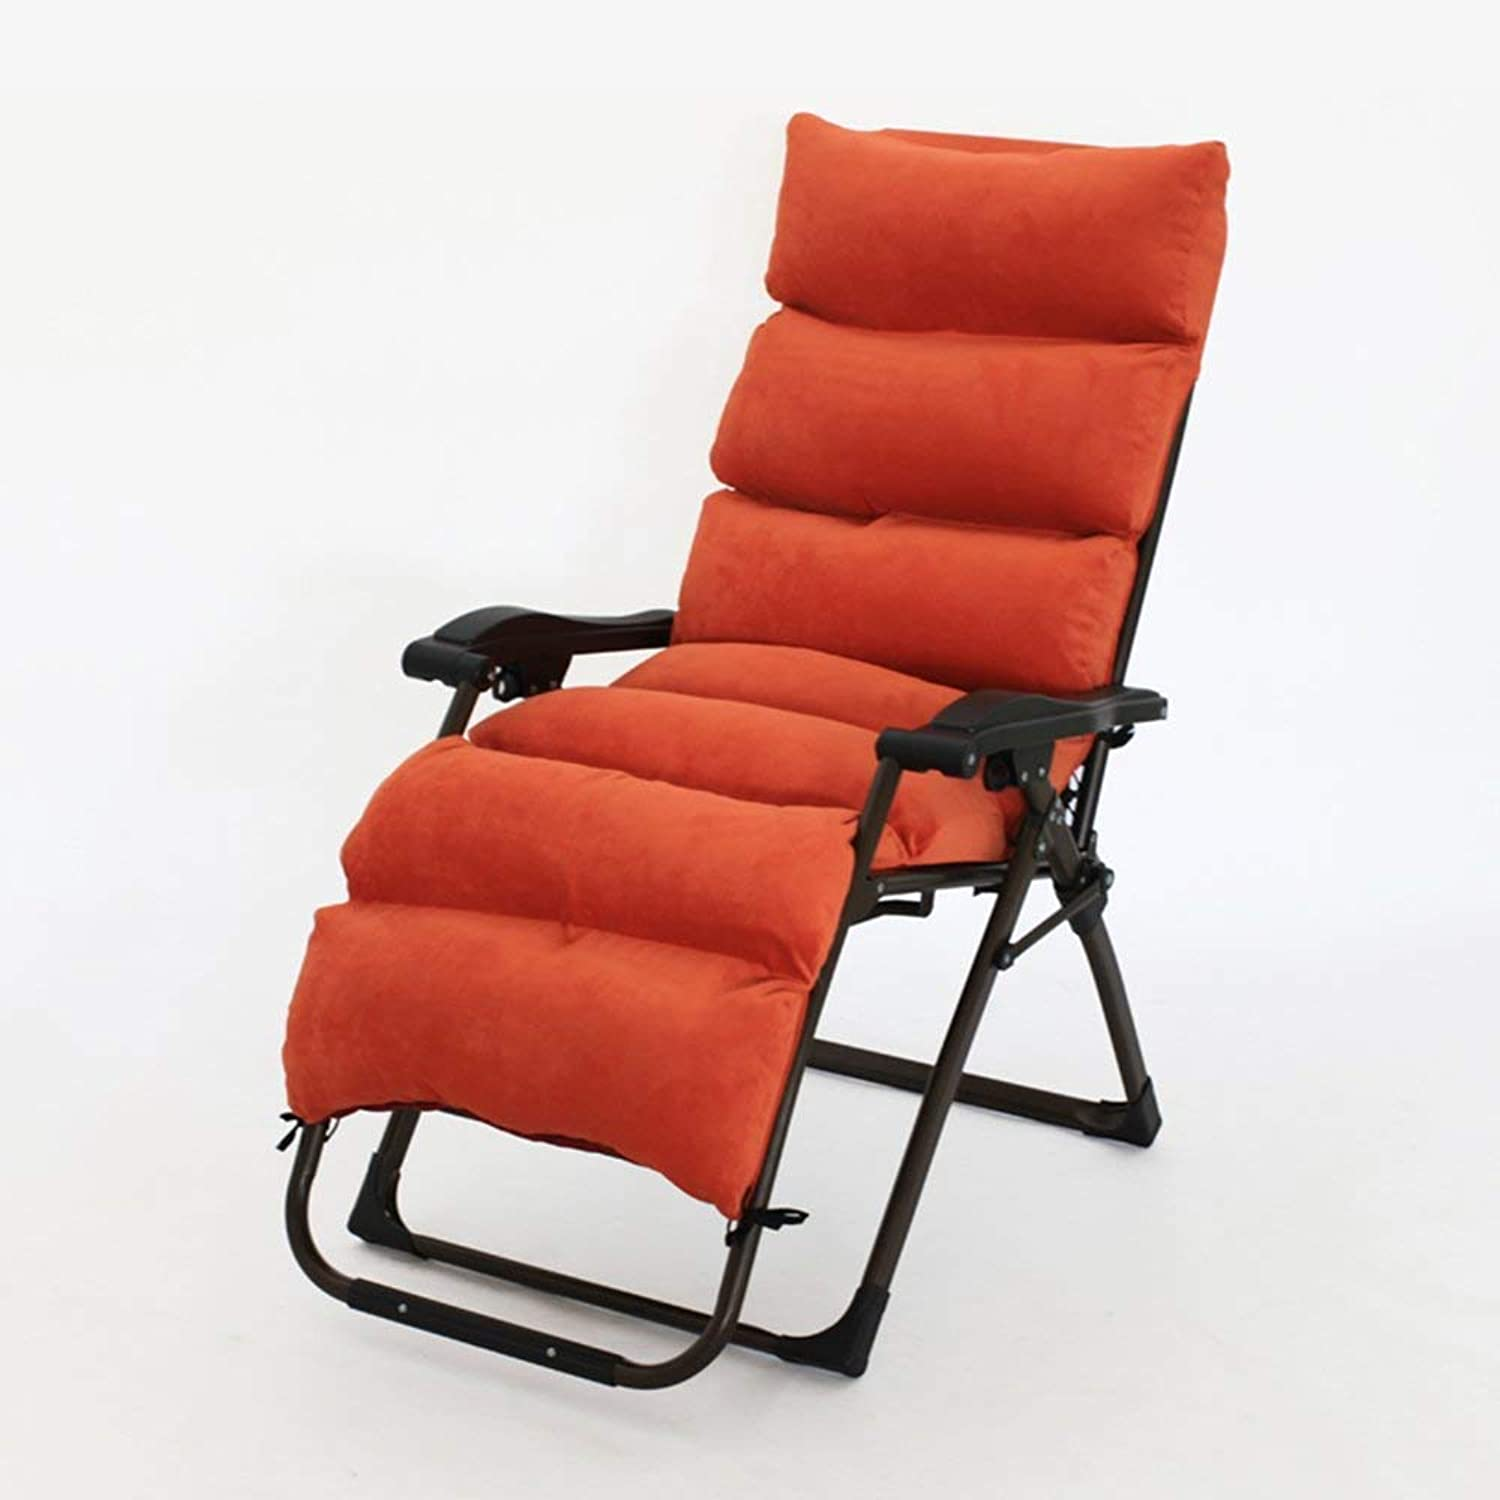 Folding Chair Lazy Sofa Office Chair Leisure Beach Chair Happy Chair Home Lazy Sofa (A Variety of colors Optional) (color    7)